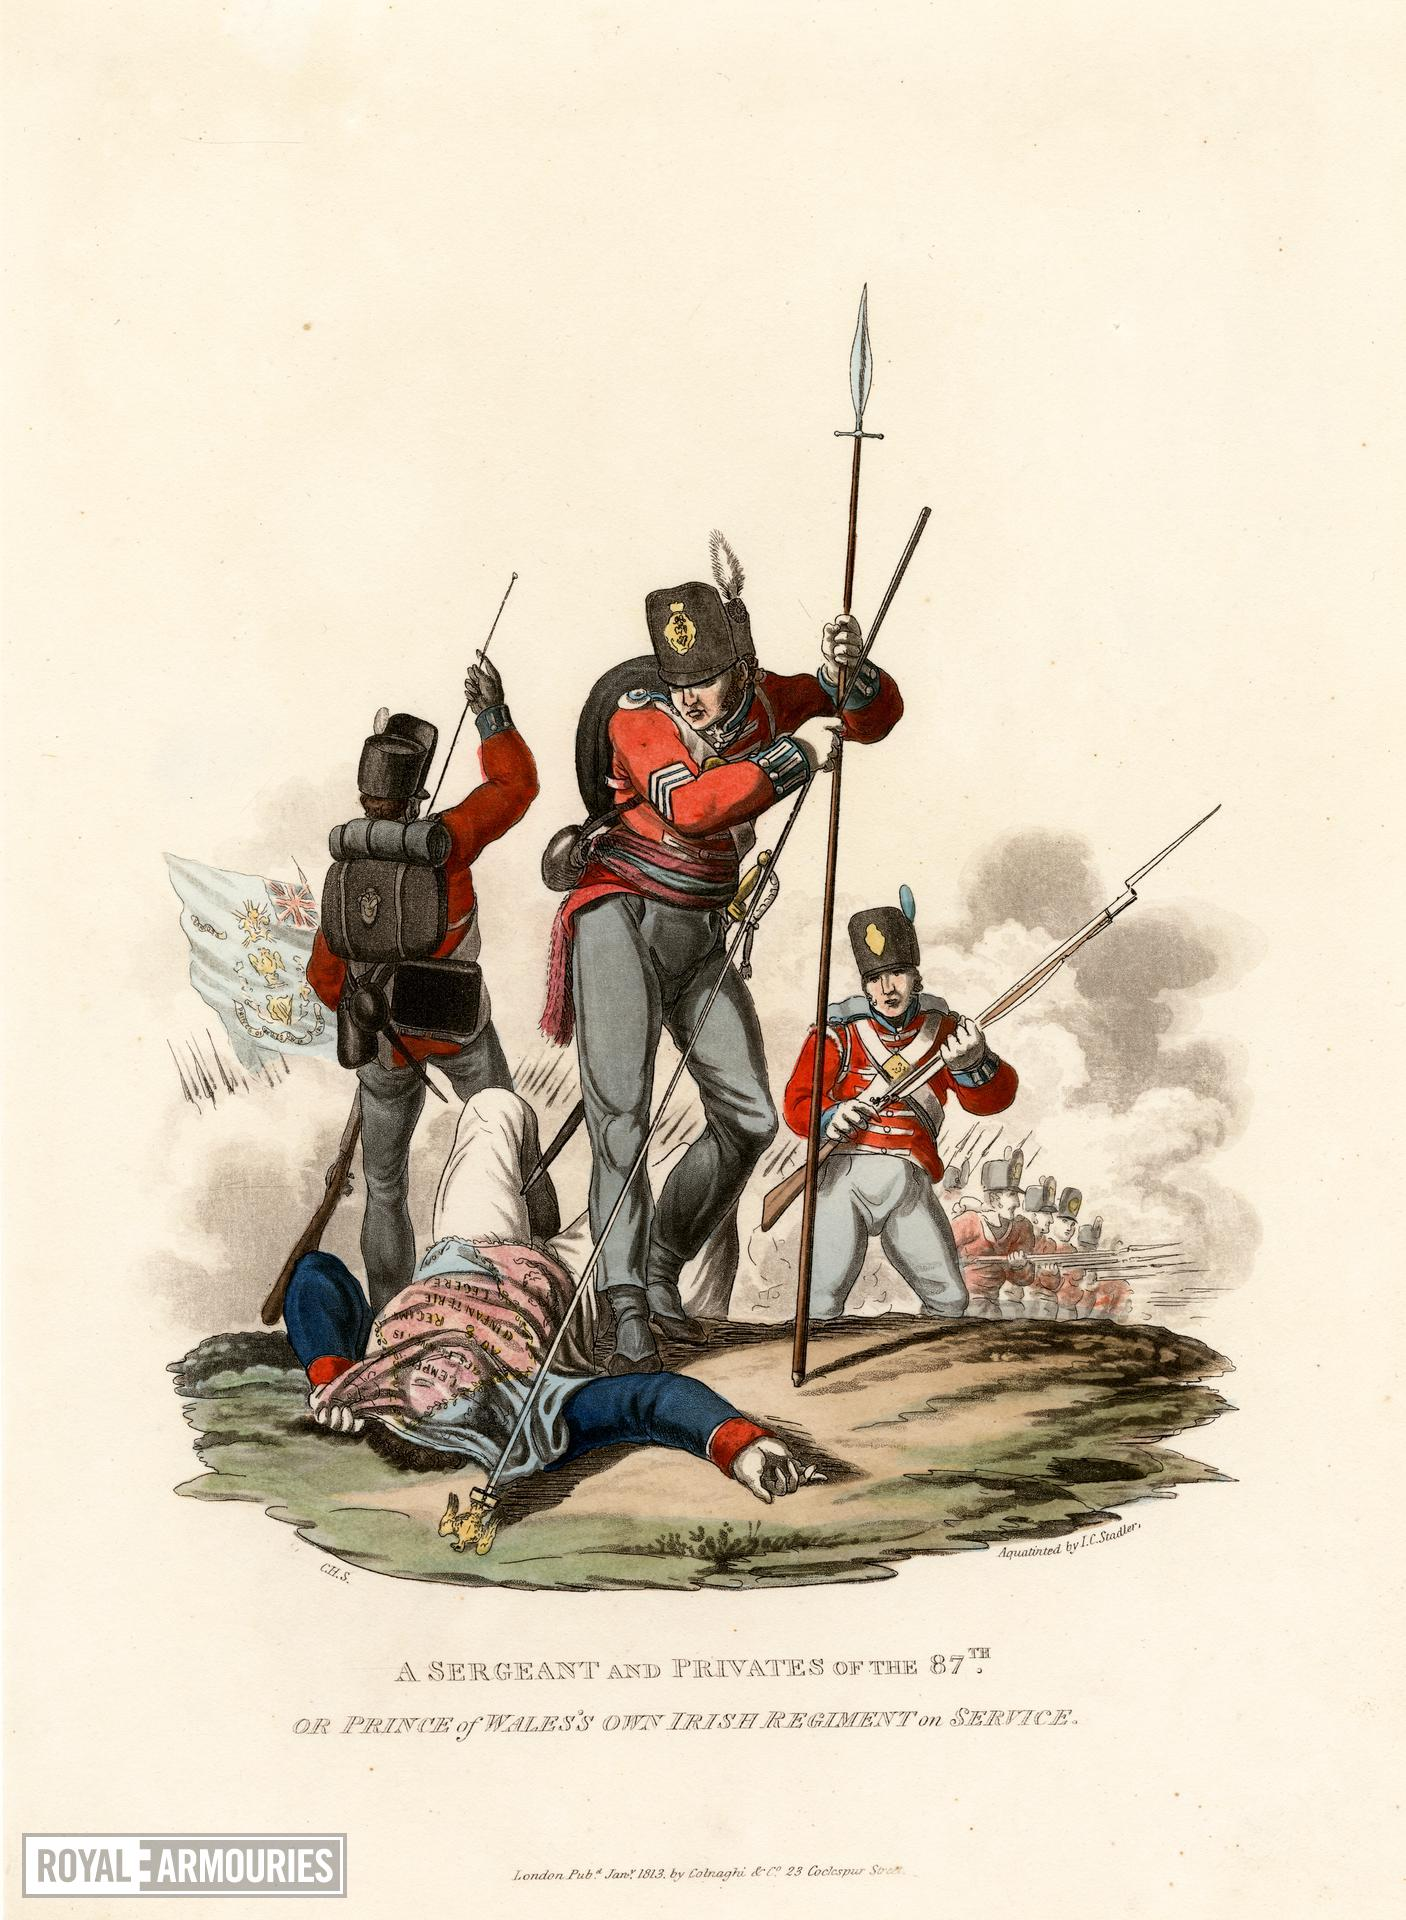 A sergeant and privates of the 87th or Prince of Wales's Own Irish Regiment on service, 1812. Aquatint by J C Stadler after Charles Hamilton Smith. London, published  January 1813 by Colnaghi & Co. 23 Cockspur Street.